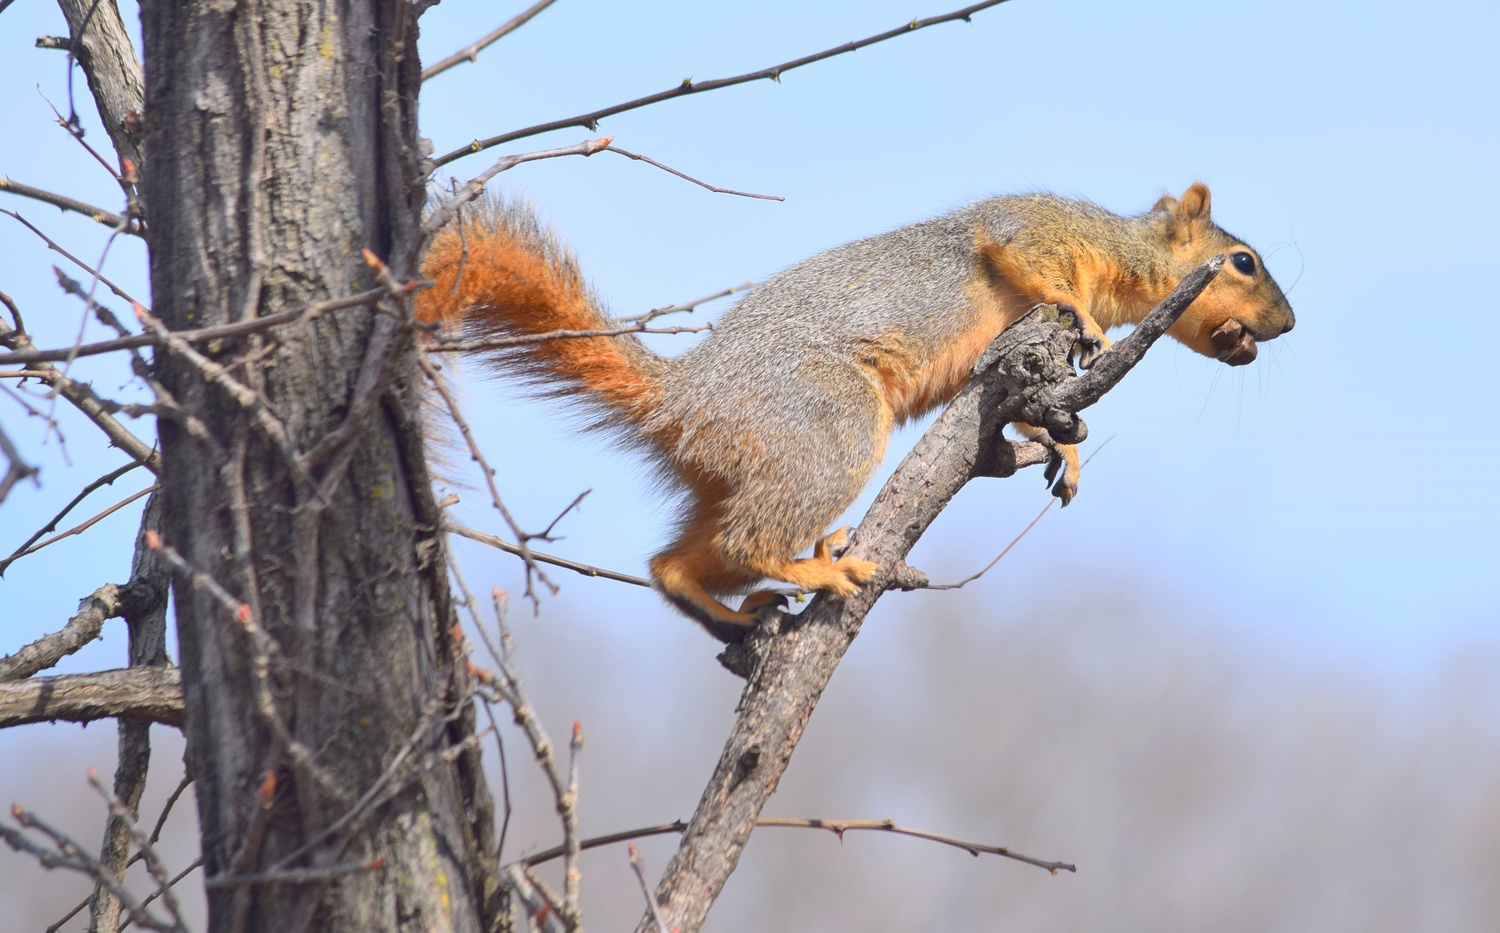 Gathering Nuts by Pam Stewart